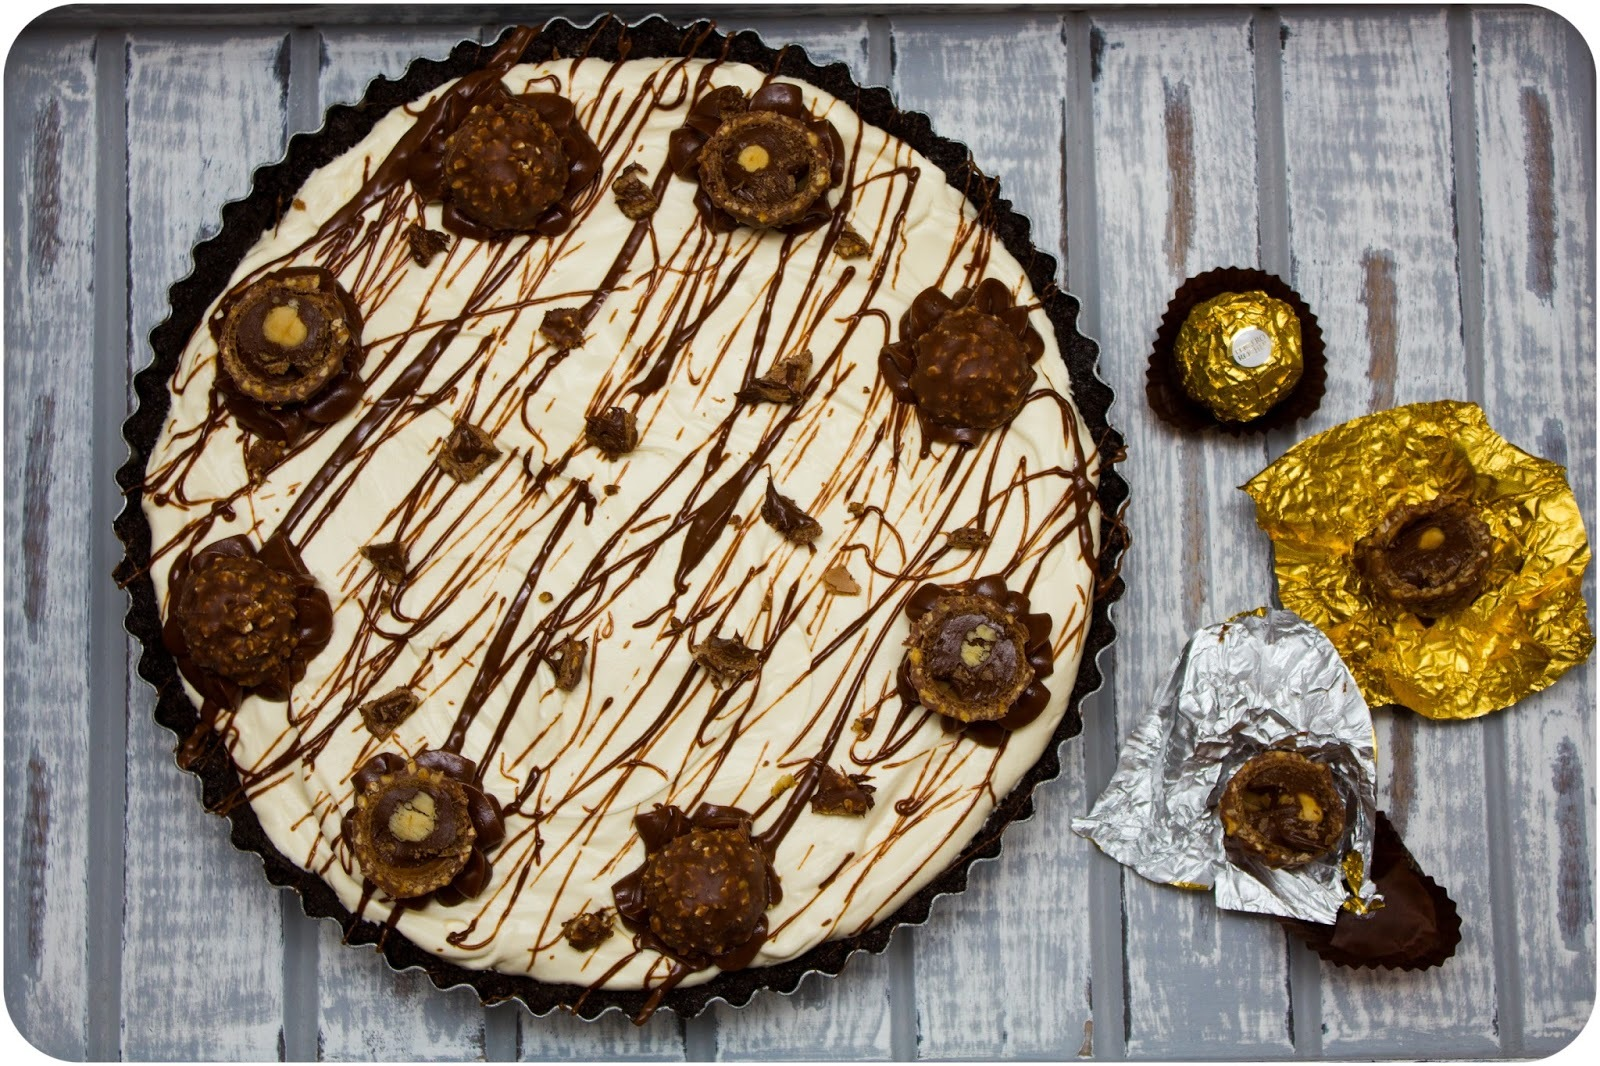 Ferrero Rocher & Nutella Fudge Cream Pie